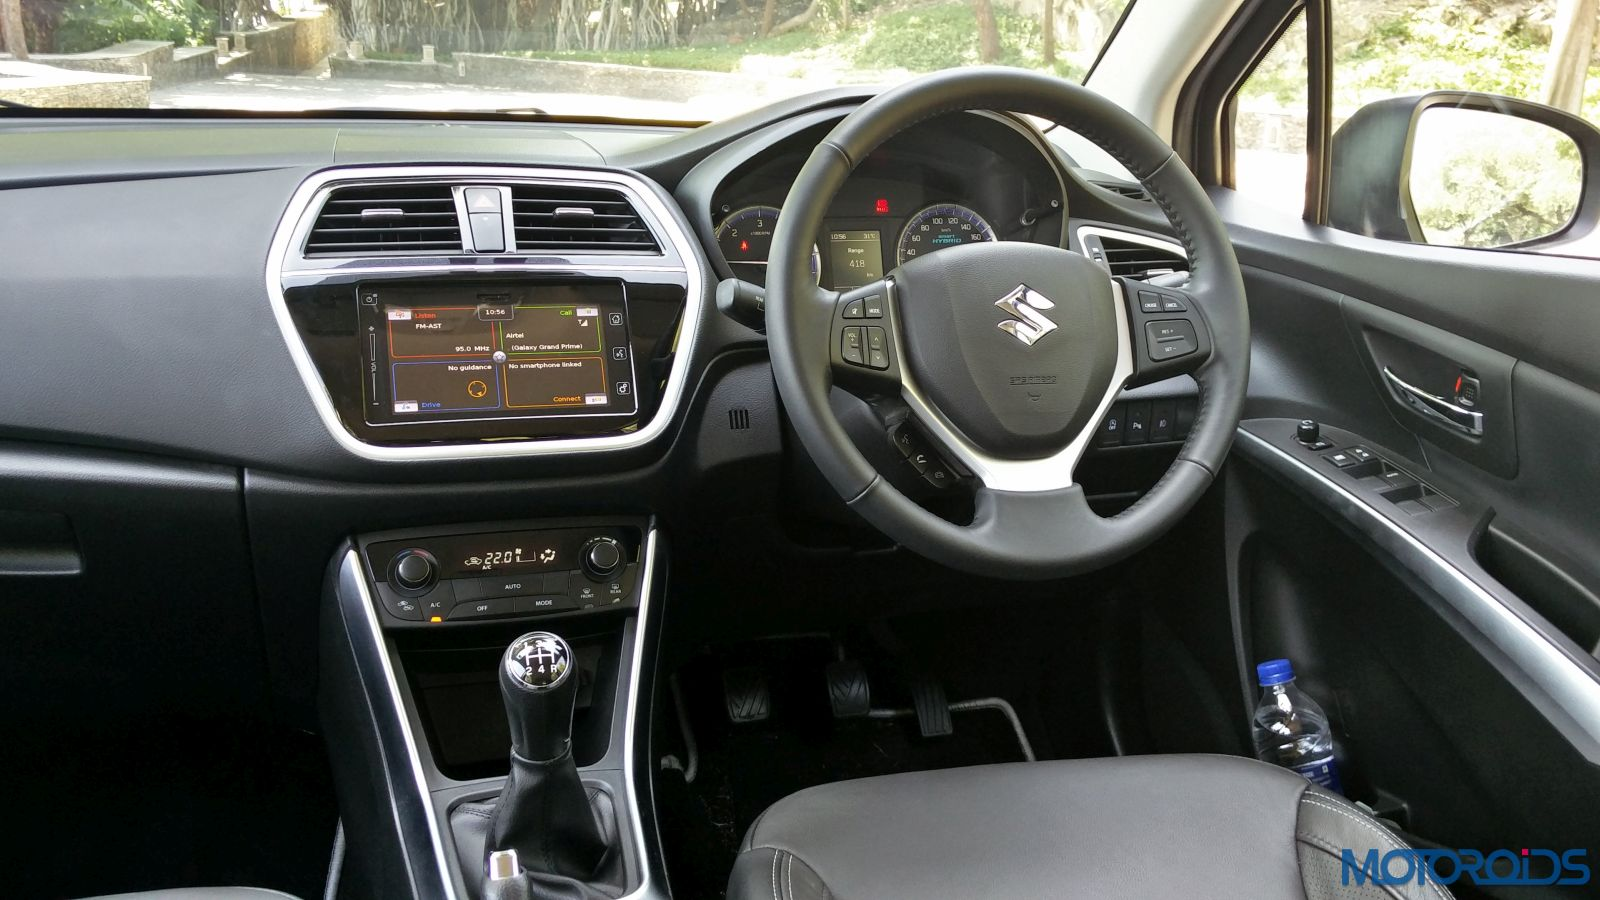 New-Maruti-Suzuki-S-Cross-Alpha-Review-cabin-45